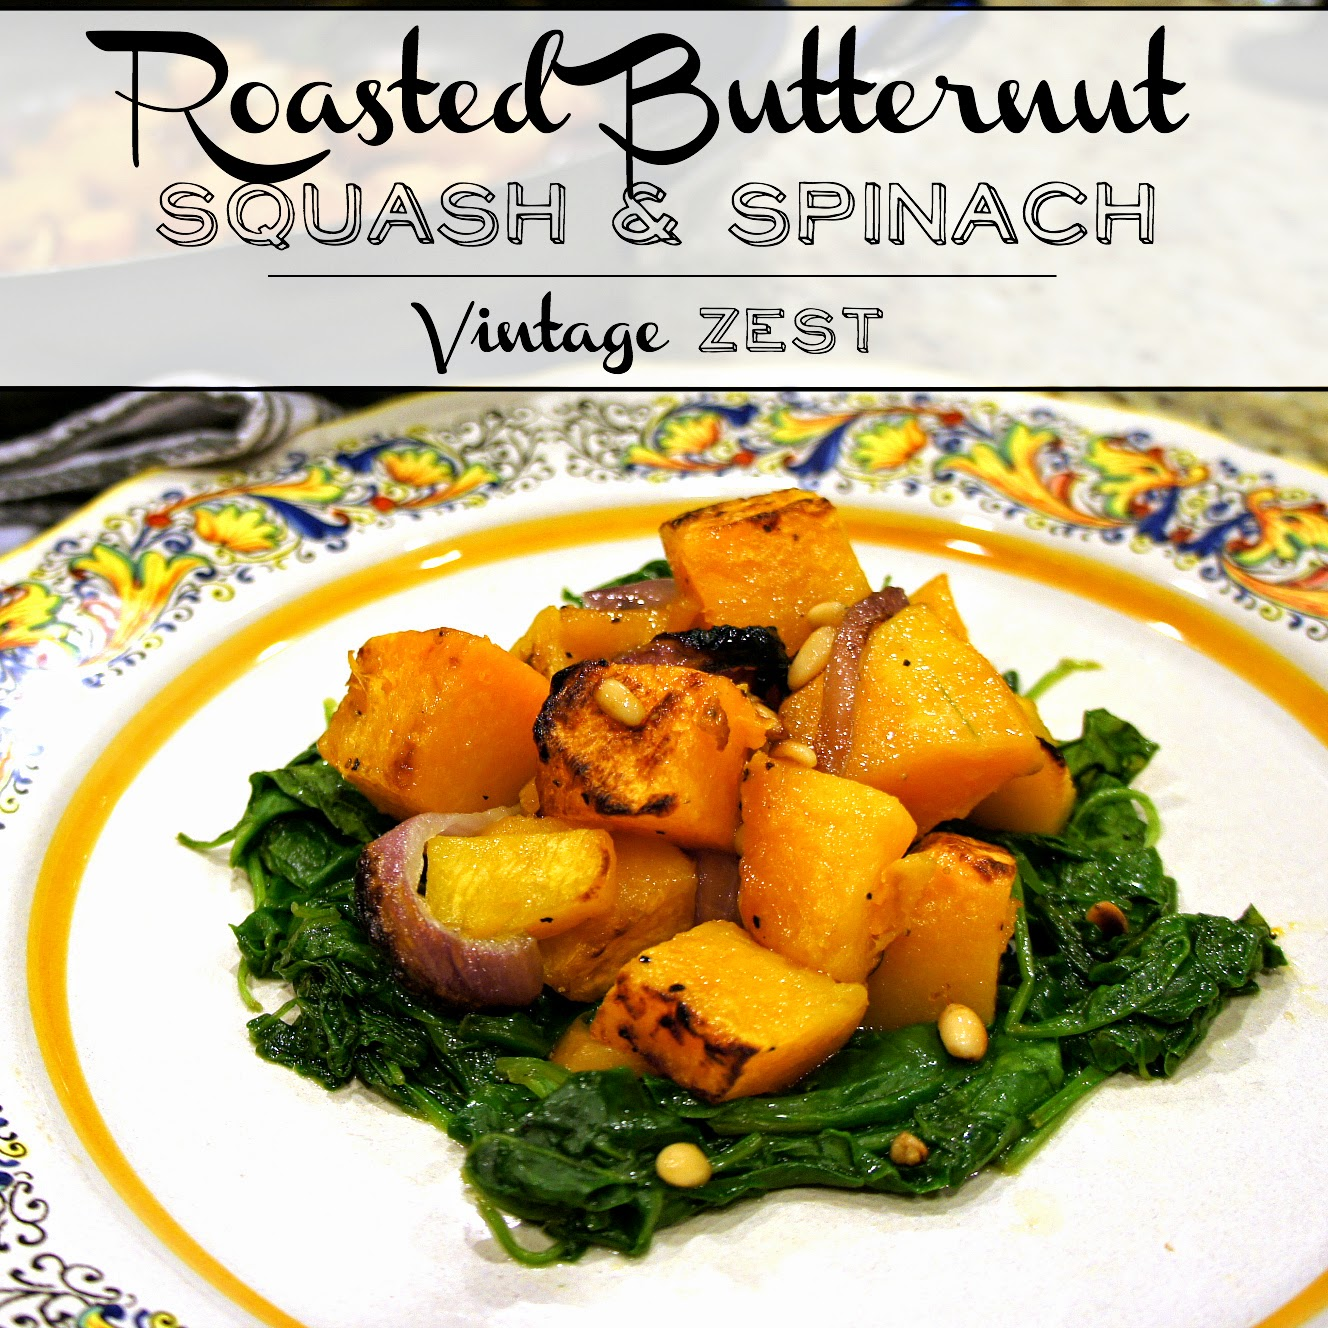 Communication on this topic: Roasted Butternut Squash and Spinach, roasted-butternut-squash-and-spinach/